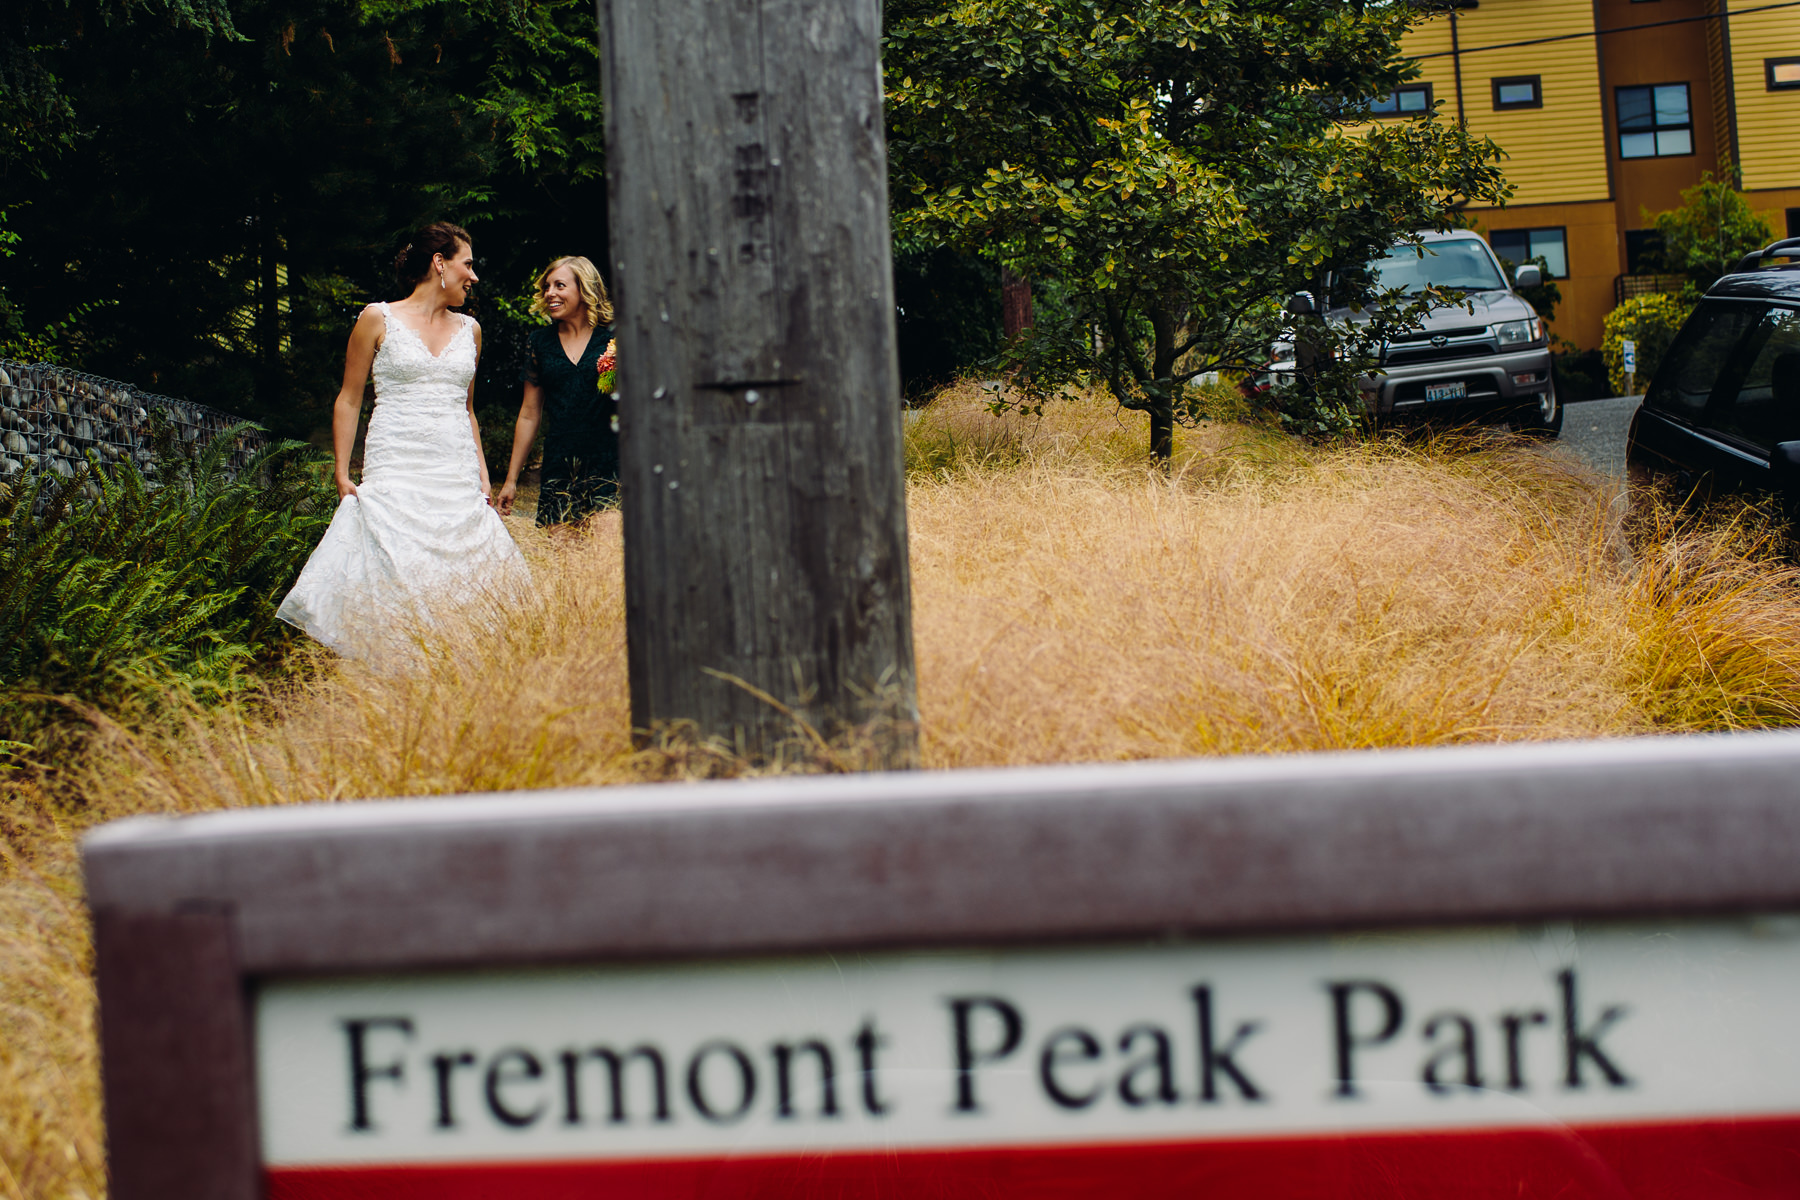 Fremont peak park first look